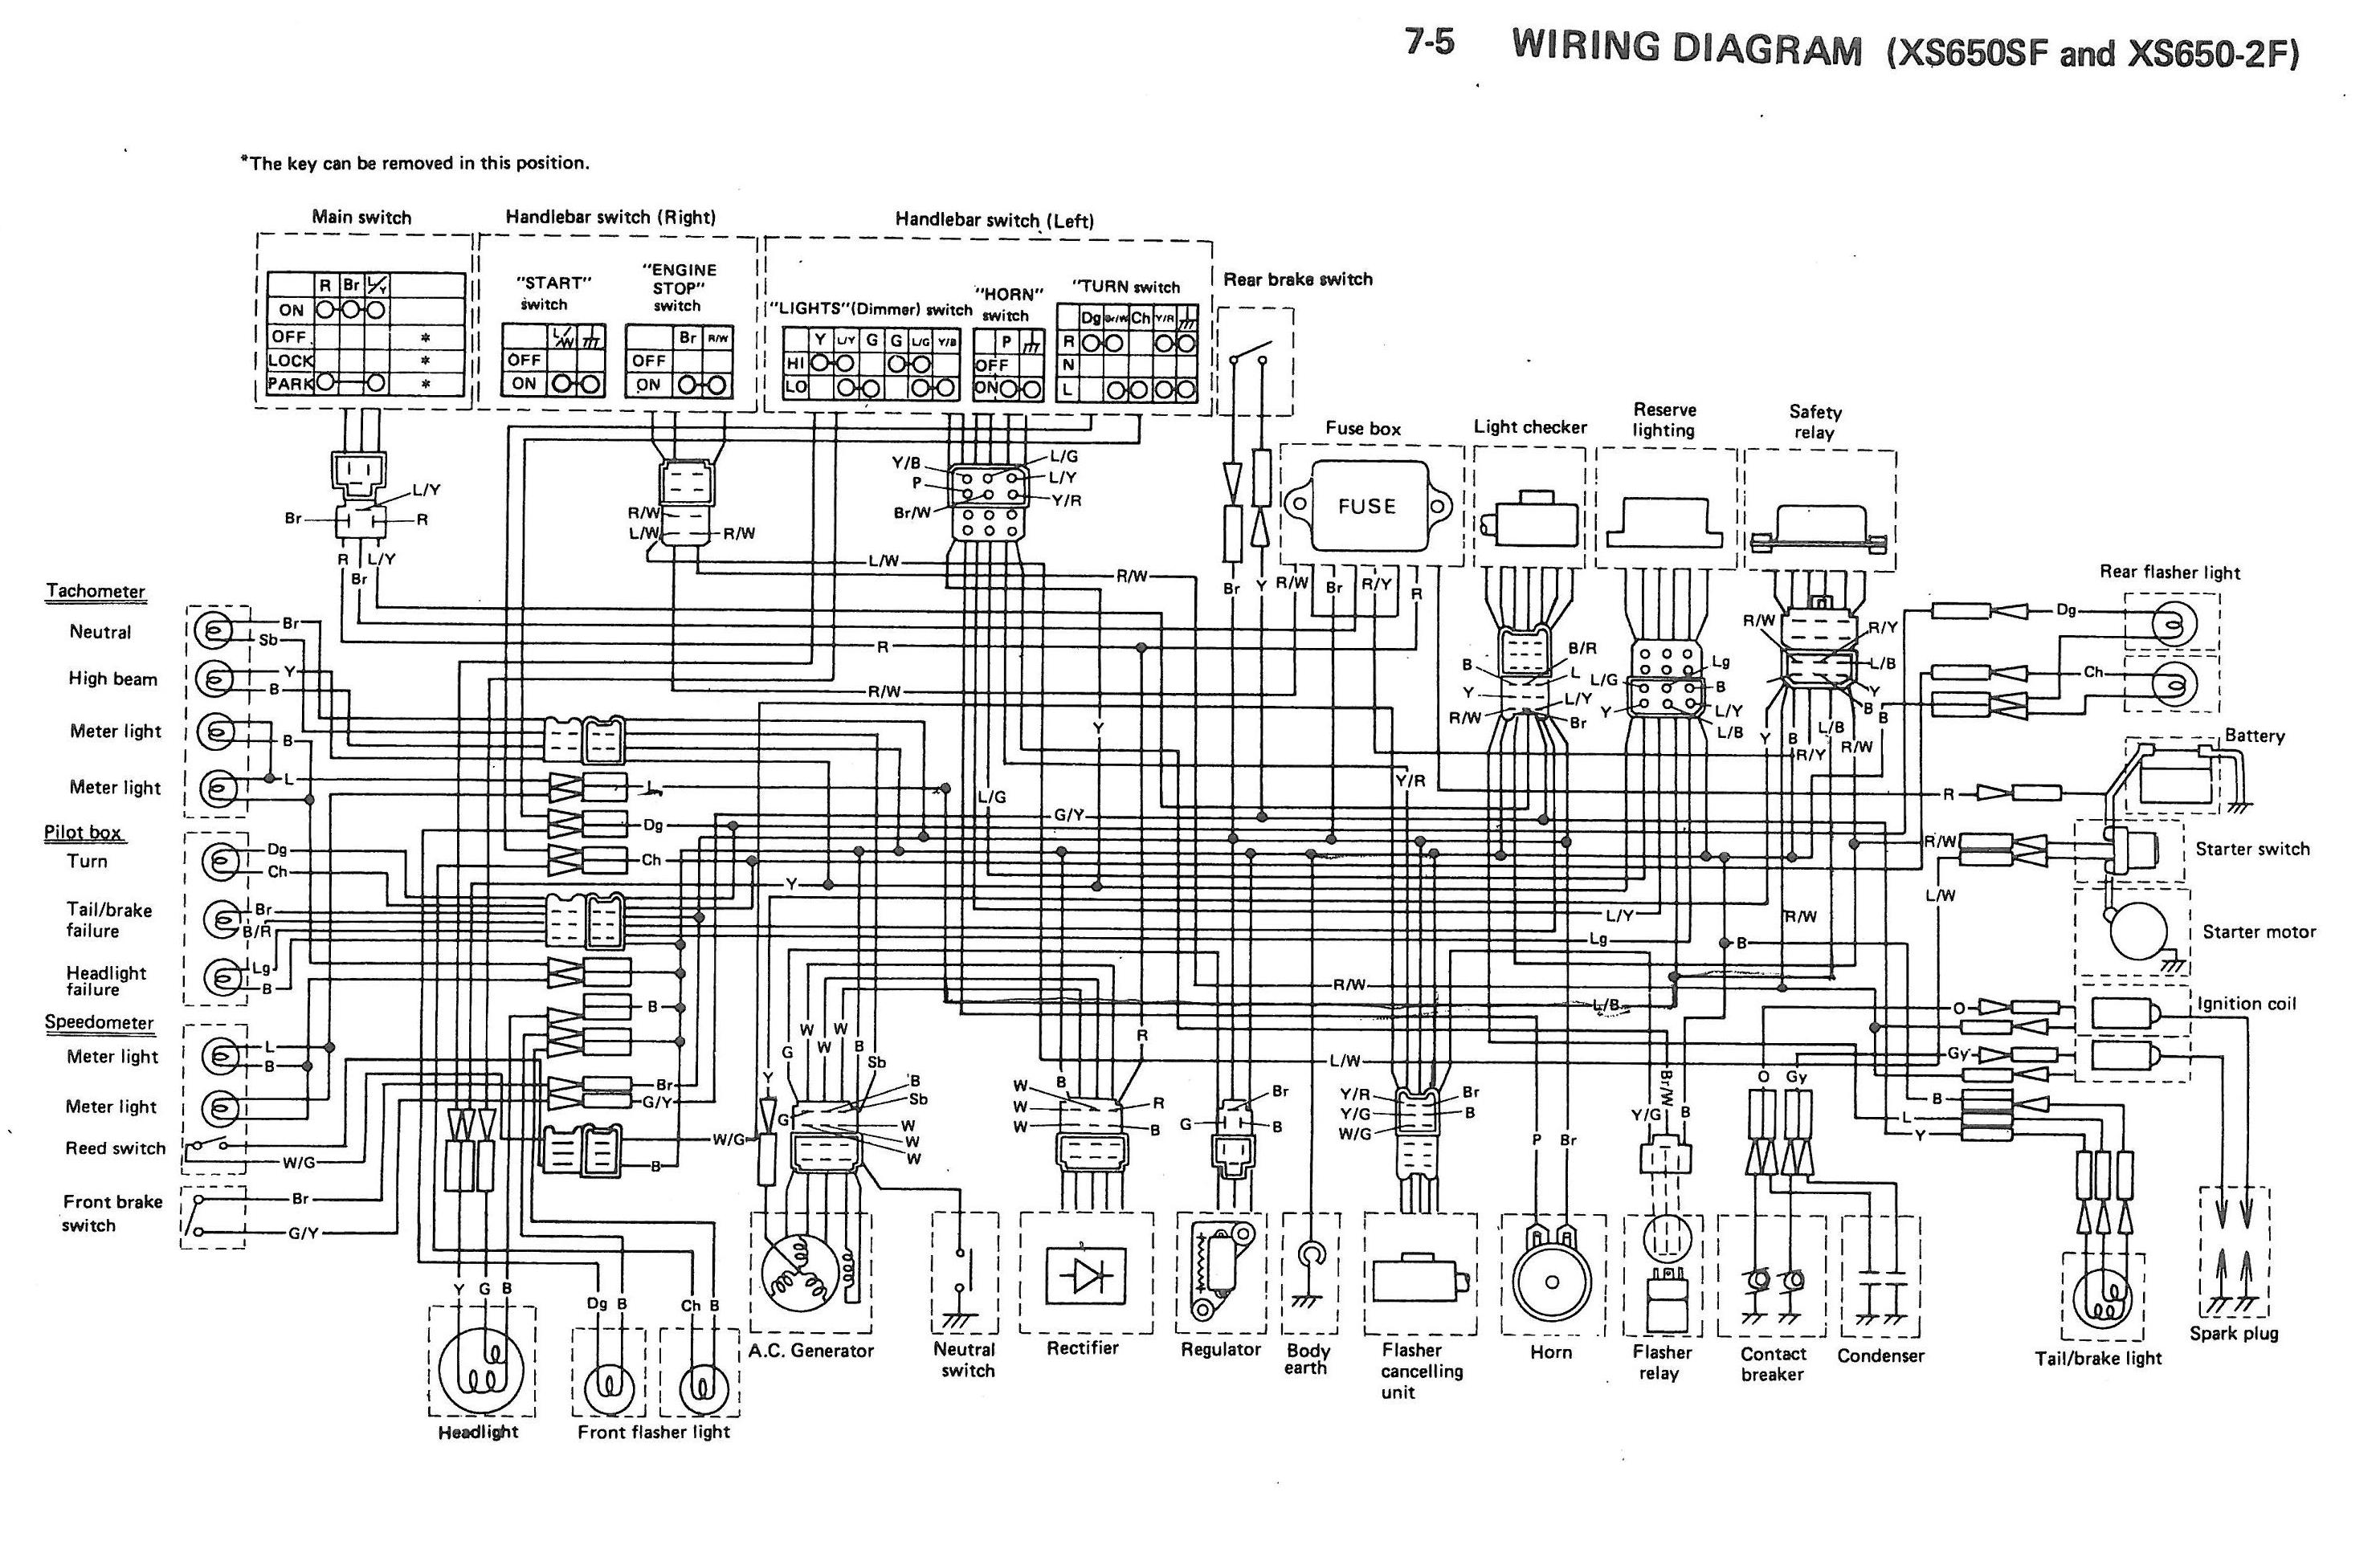 1975 xs650 wiring diagram